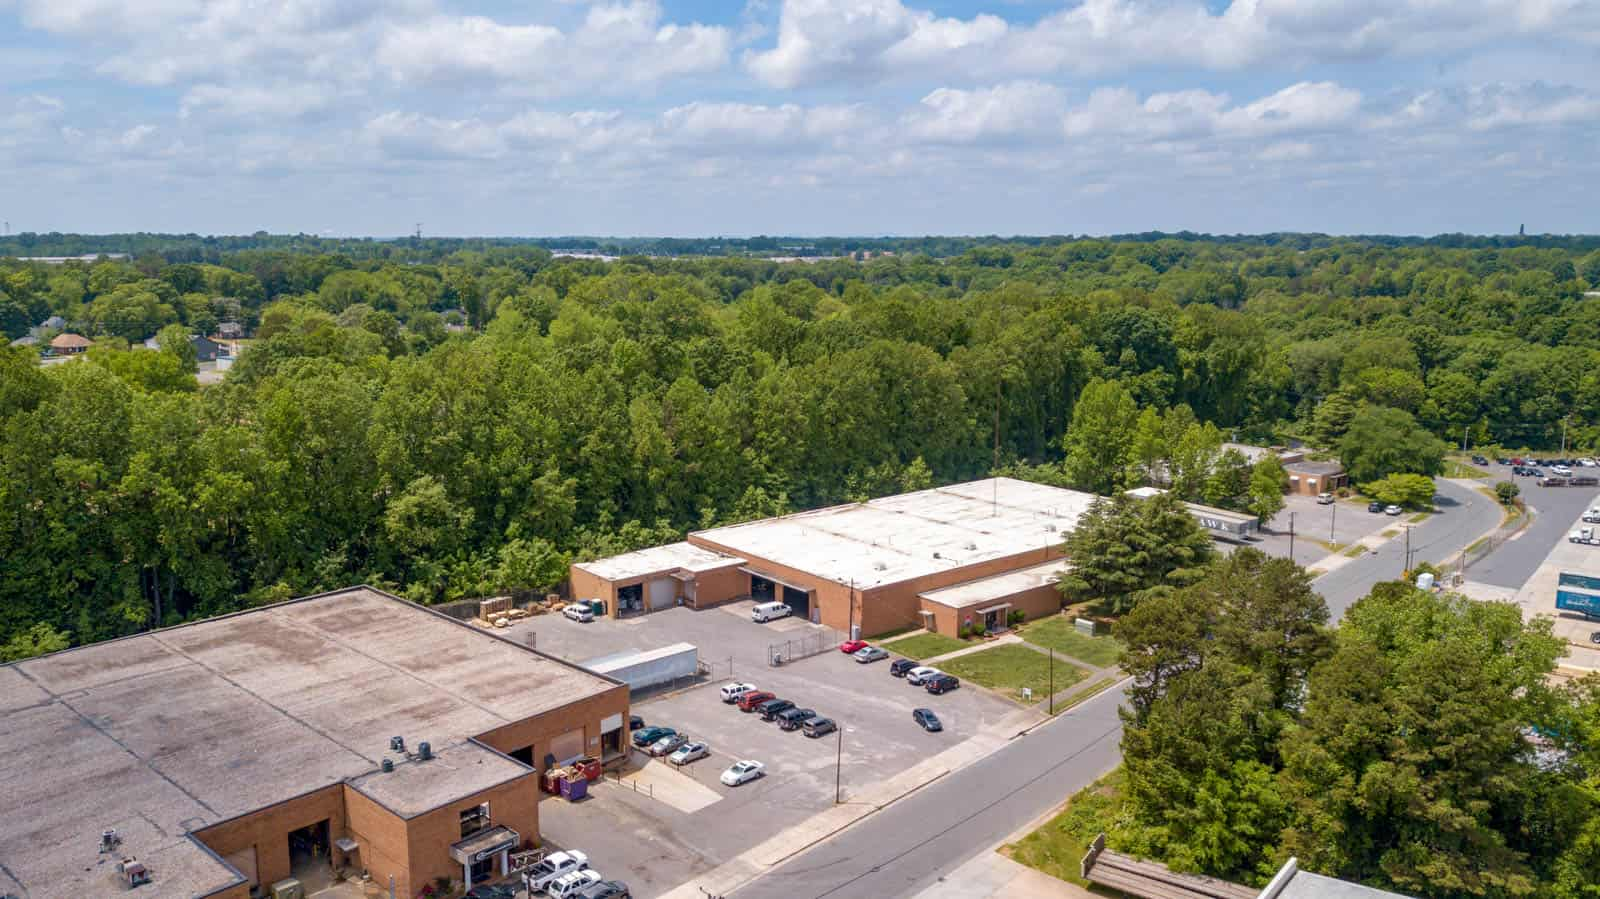 drone photo of commercial facility outside of Charlotte, North Carolina